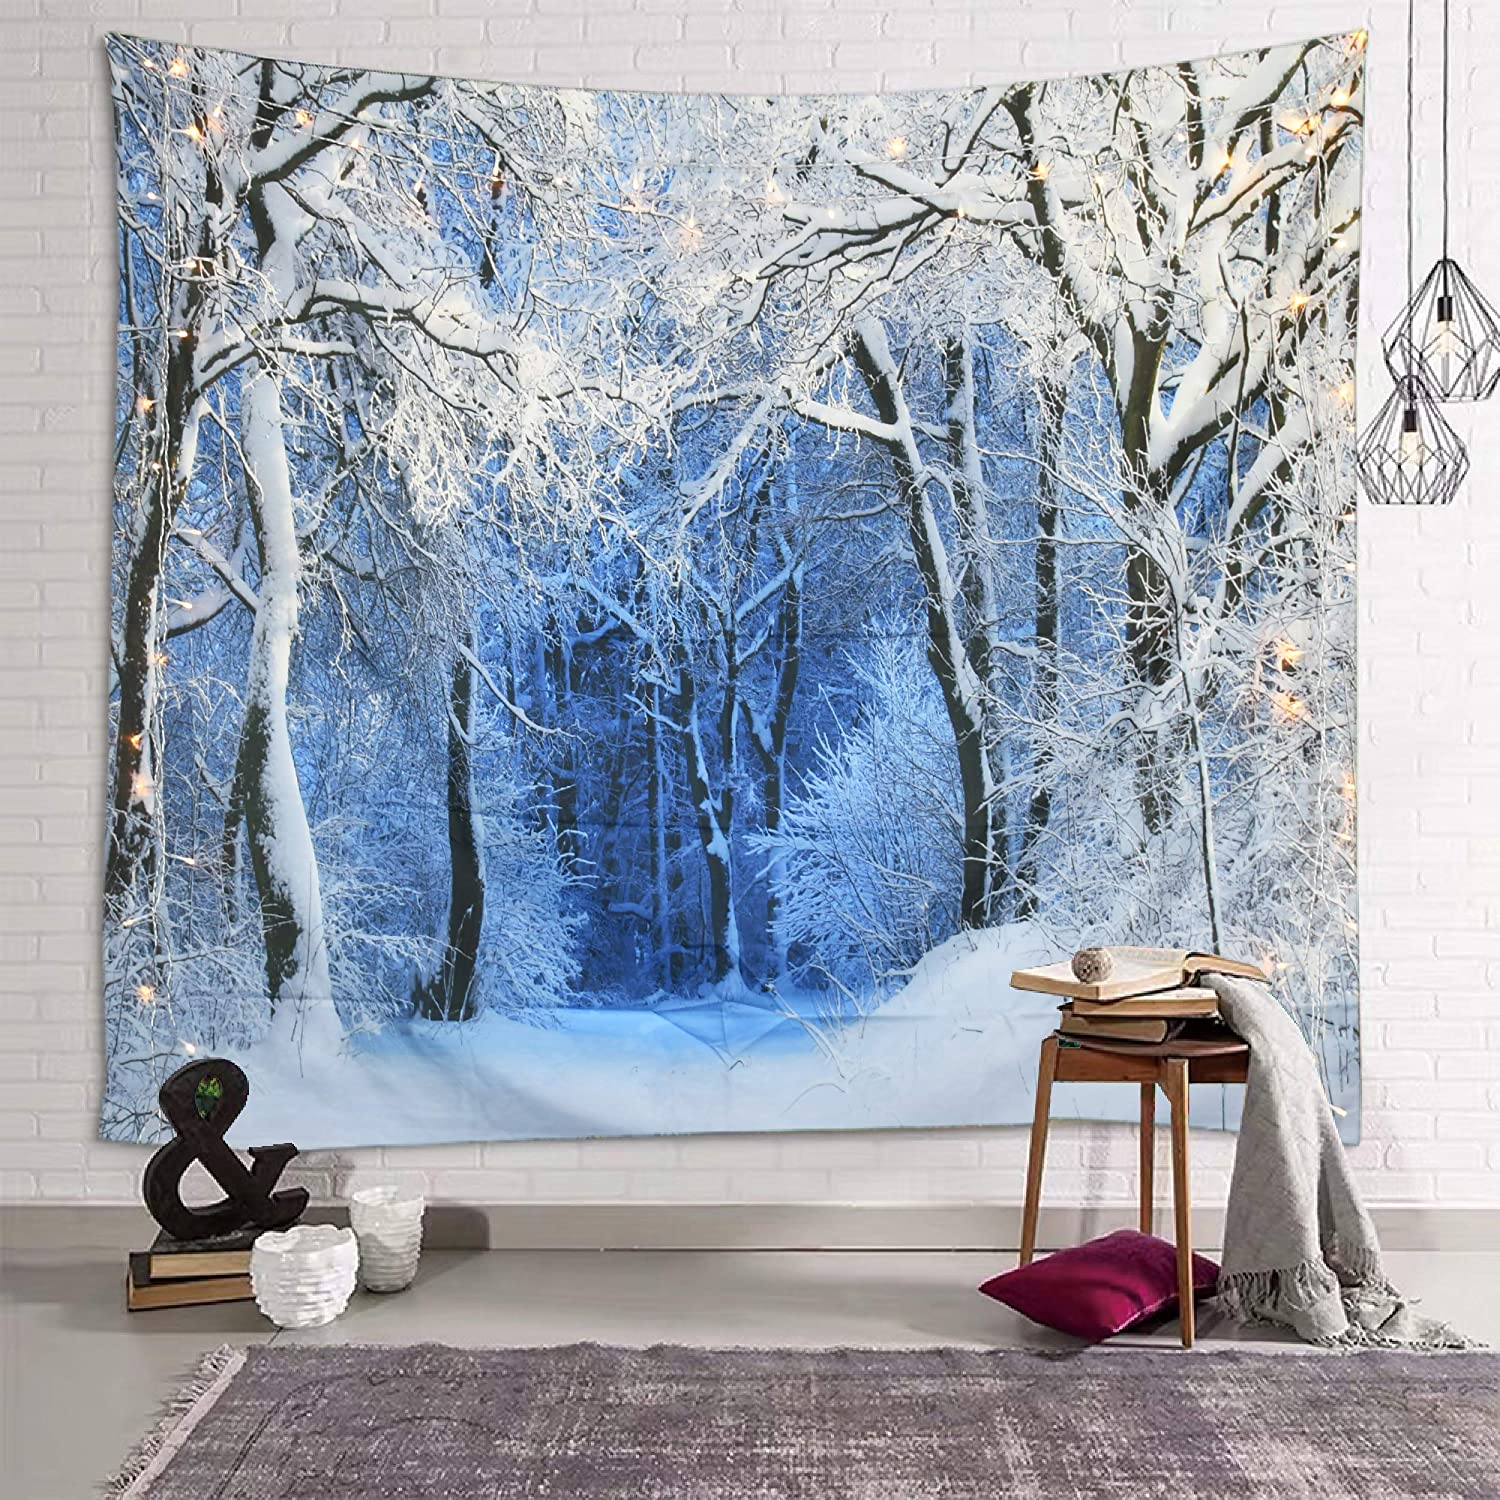 Sevendec Christmas Tapestry Wall Hanging Nature White Forest Snow Wall Tapestry for Party Livingroom Bedroom Dorm Home Decor W59